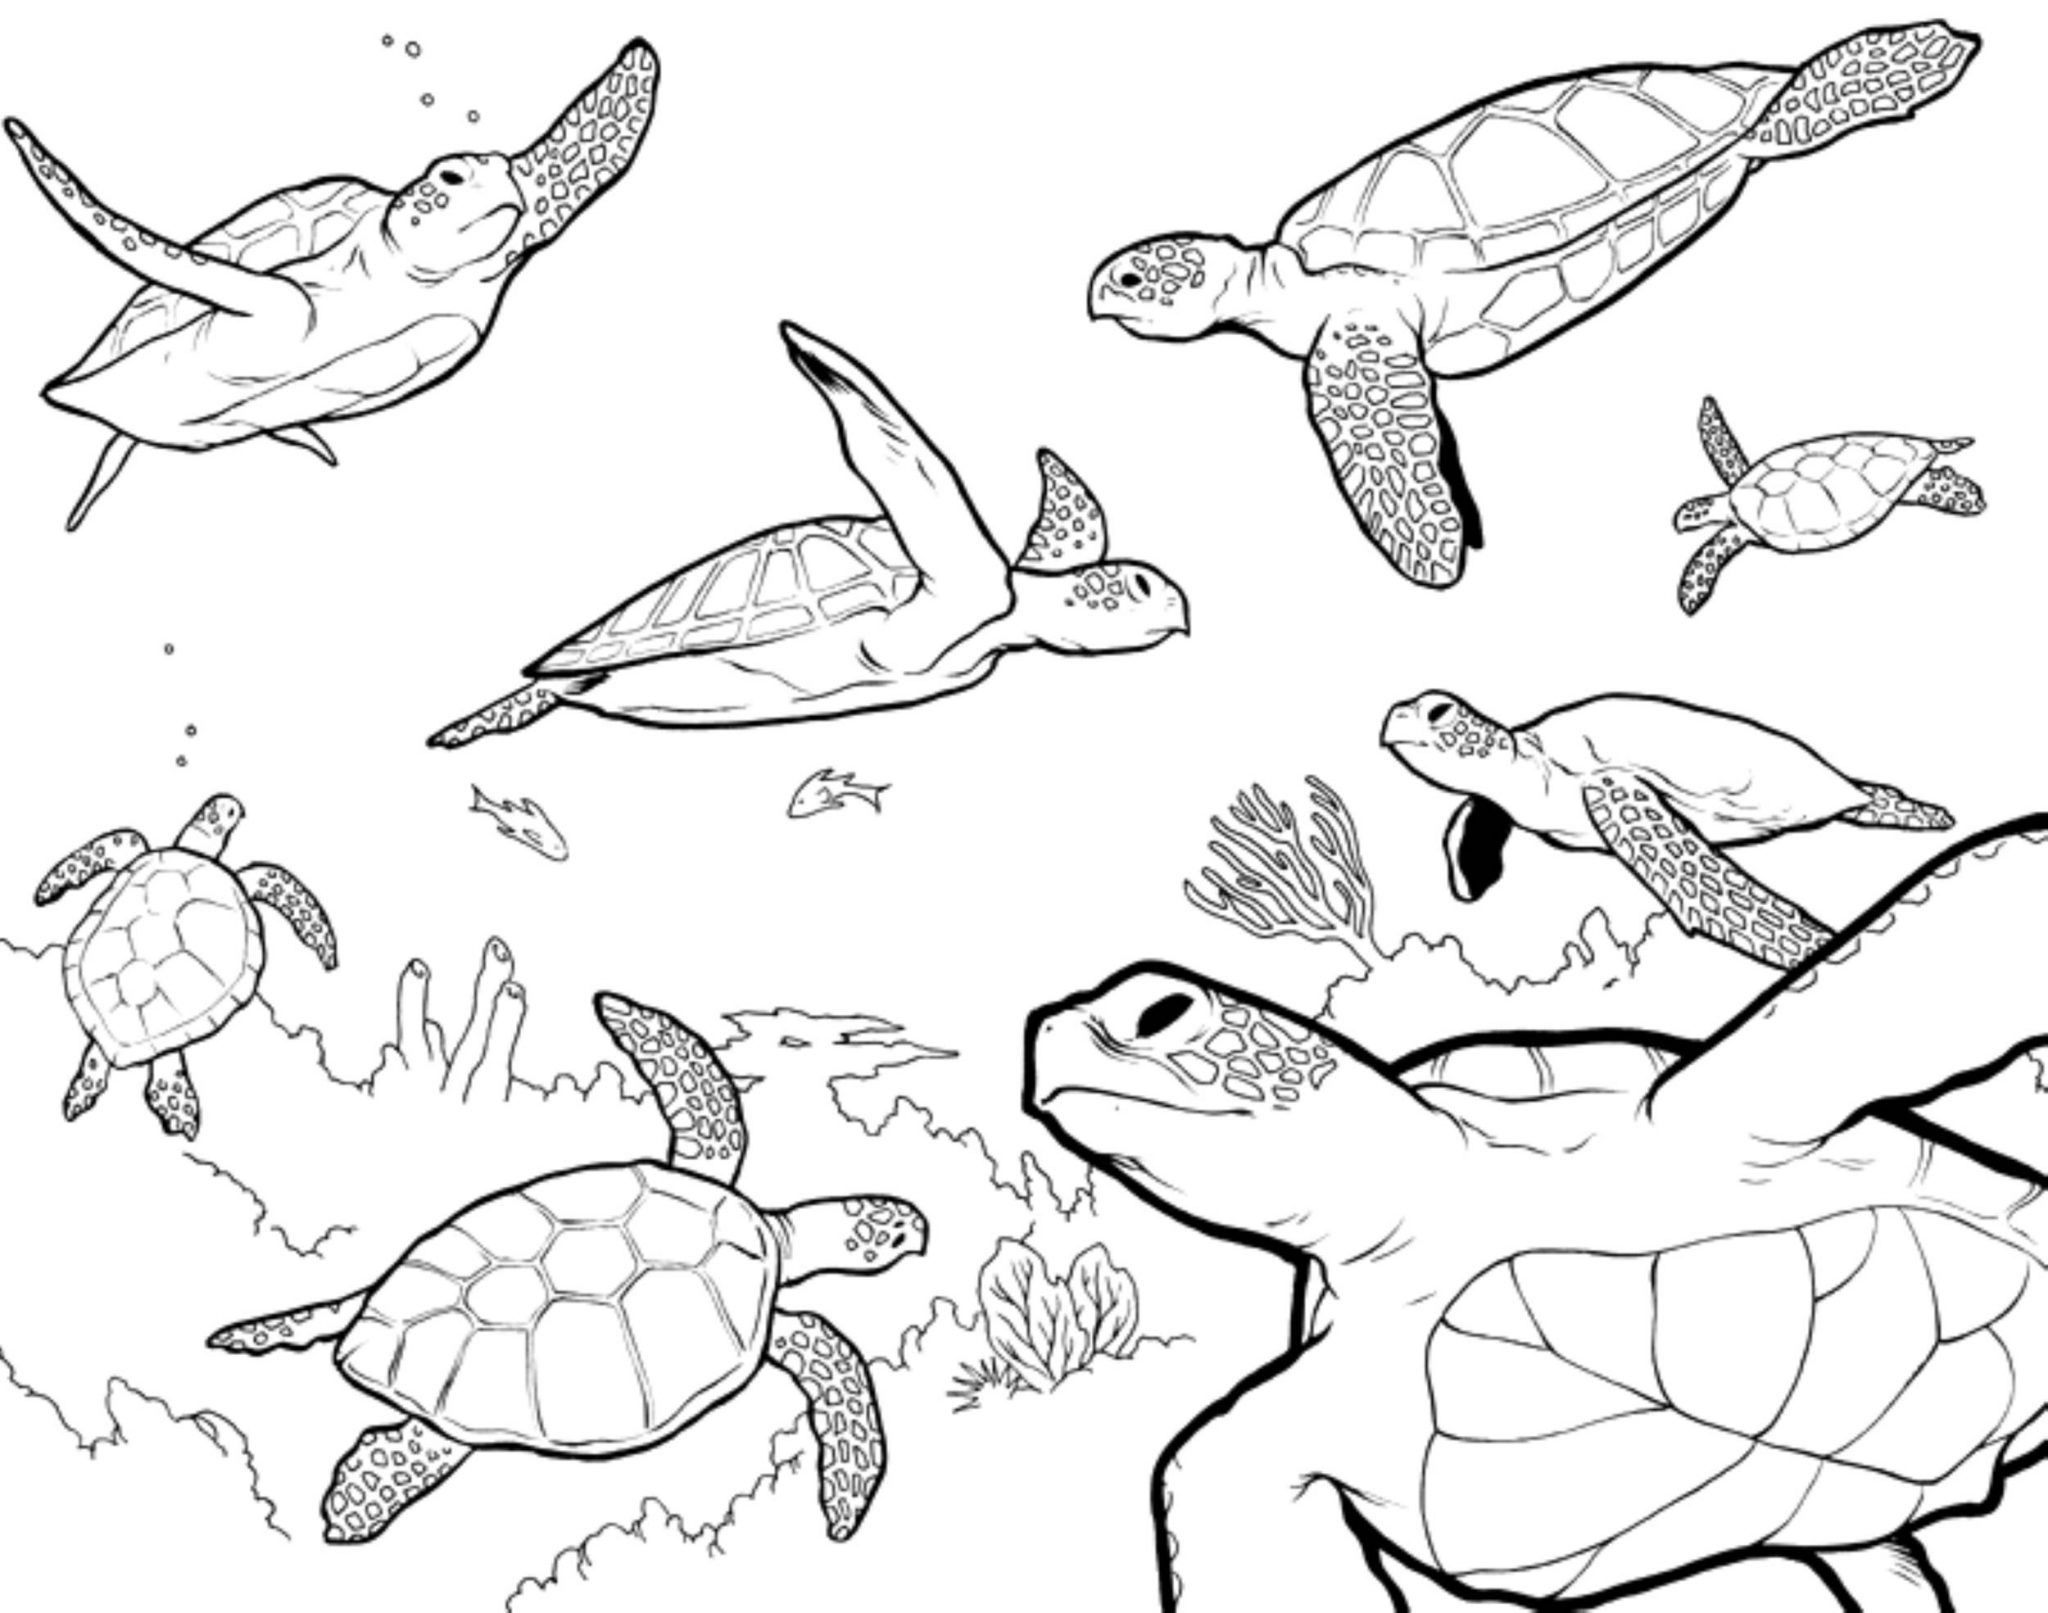 turtle coloring book page zentangle turtle coloring page free printable coloring pages page book turtle coloring